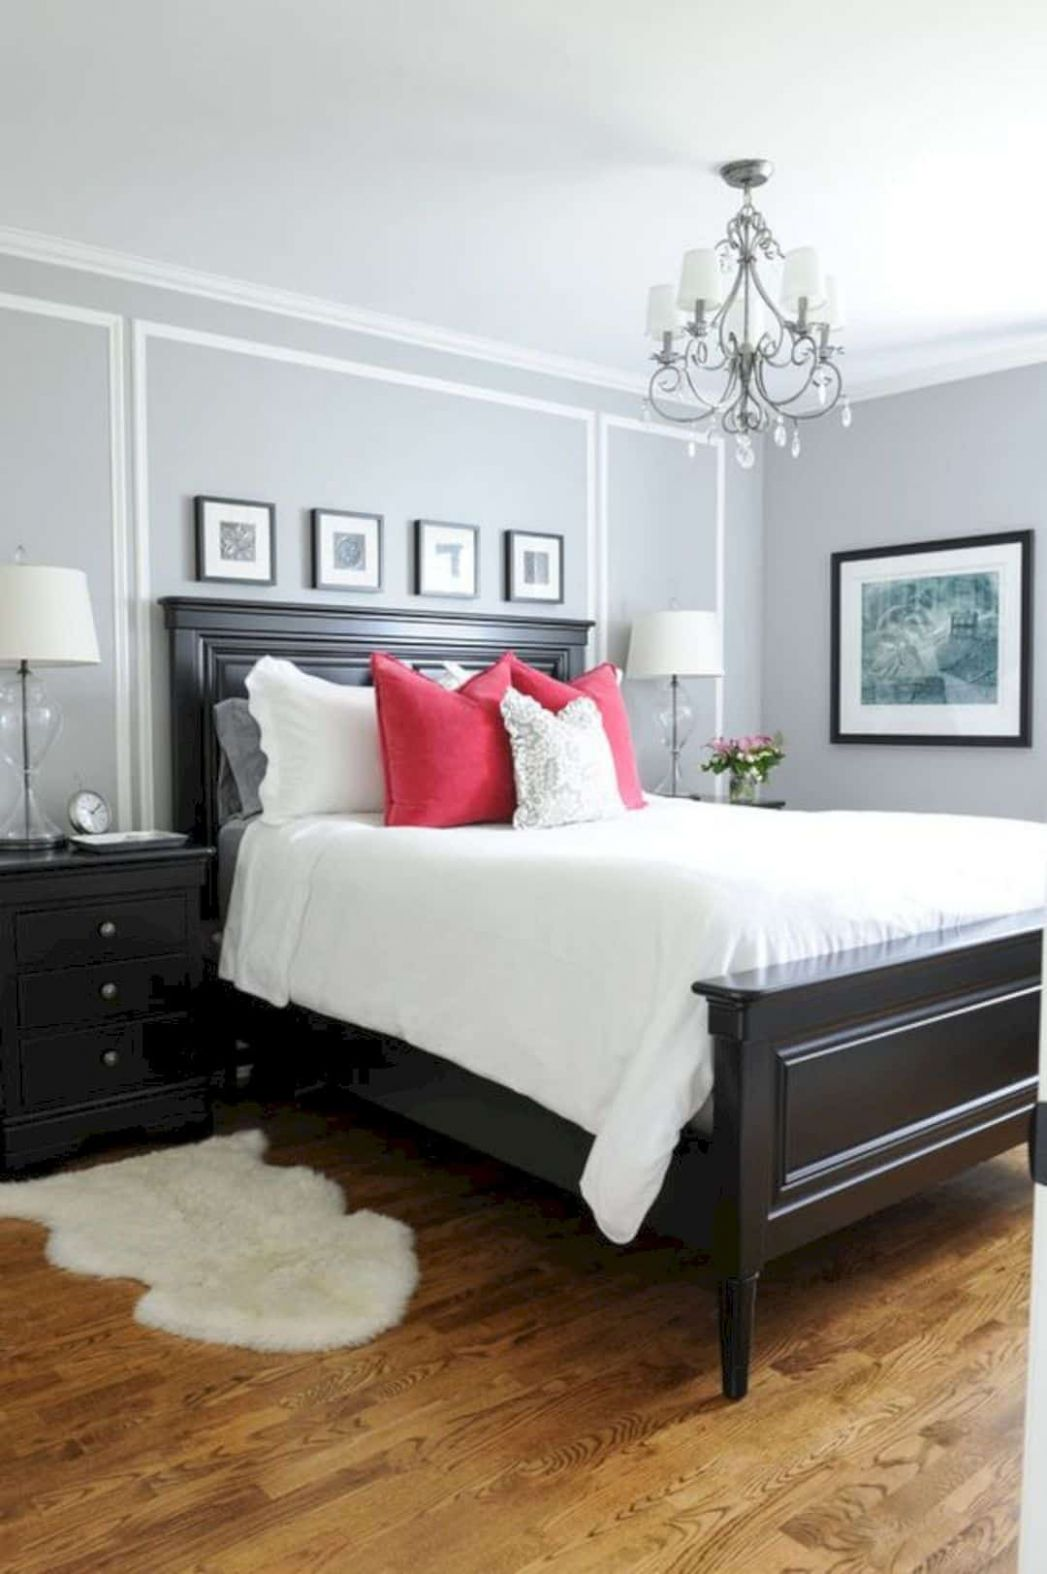 11 Awesome Black Furniture Bedroom Ideas - bedroom ideas with black furniture